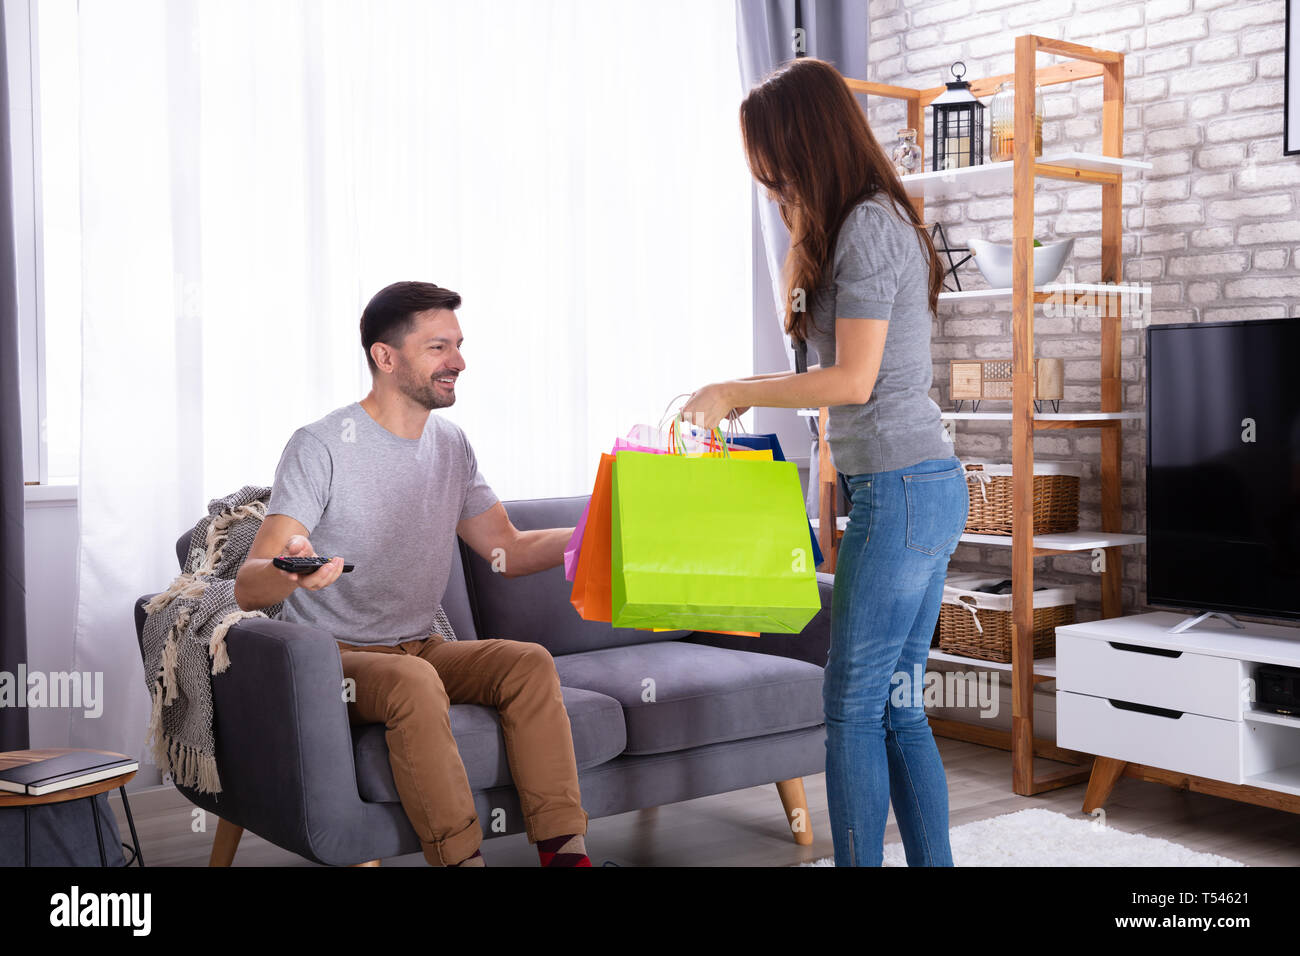 Happy Husband Sitting On Couch Looking At His Wife Carrying Shopping Bags - Stock Image